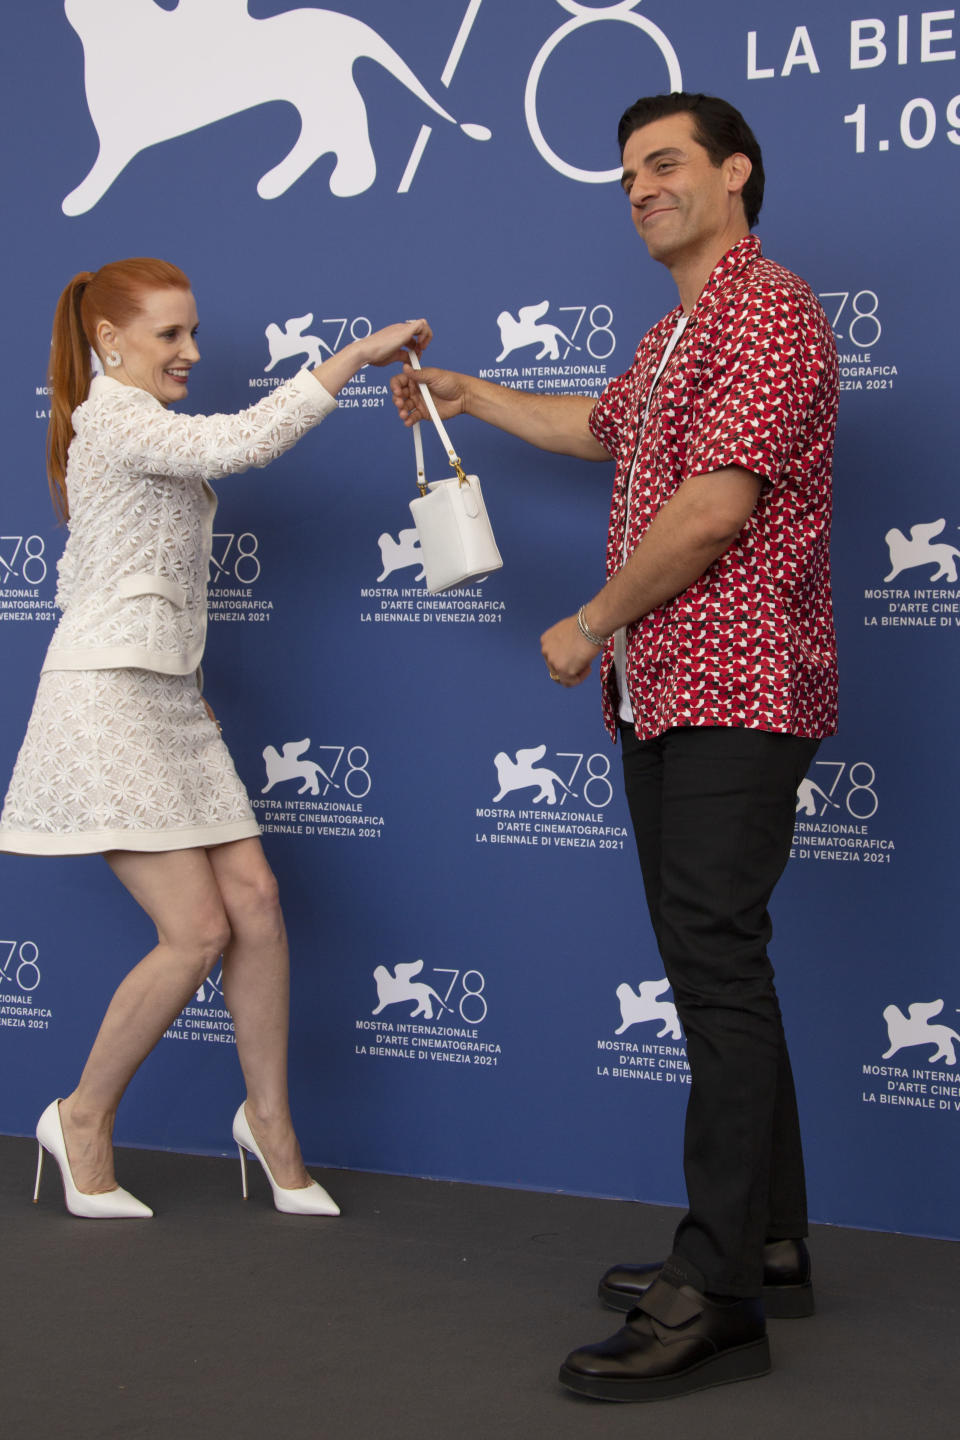 FILE - In this Sept, 4, 2021 file photo Oscar Isaac, right, and Jessica Chastain pose for photographers at the photo call for the film 'Scenes of a Marriage' during the 78th edition of the Venice Film Festival in Venice, Italy. (Photo by Joel C Ryan/Invision/AP, File)